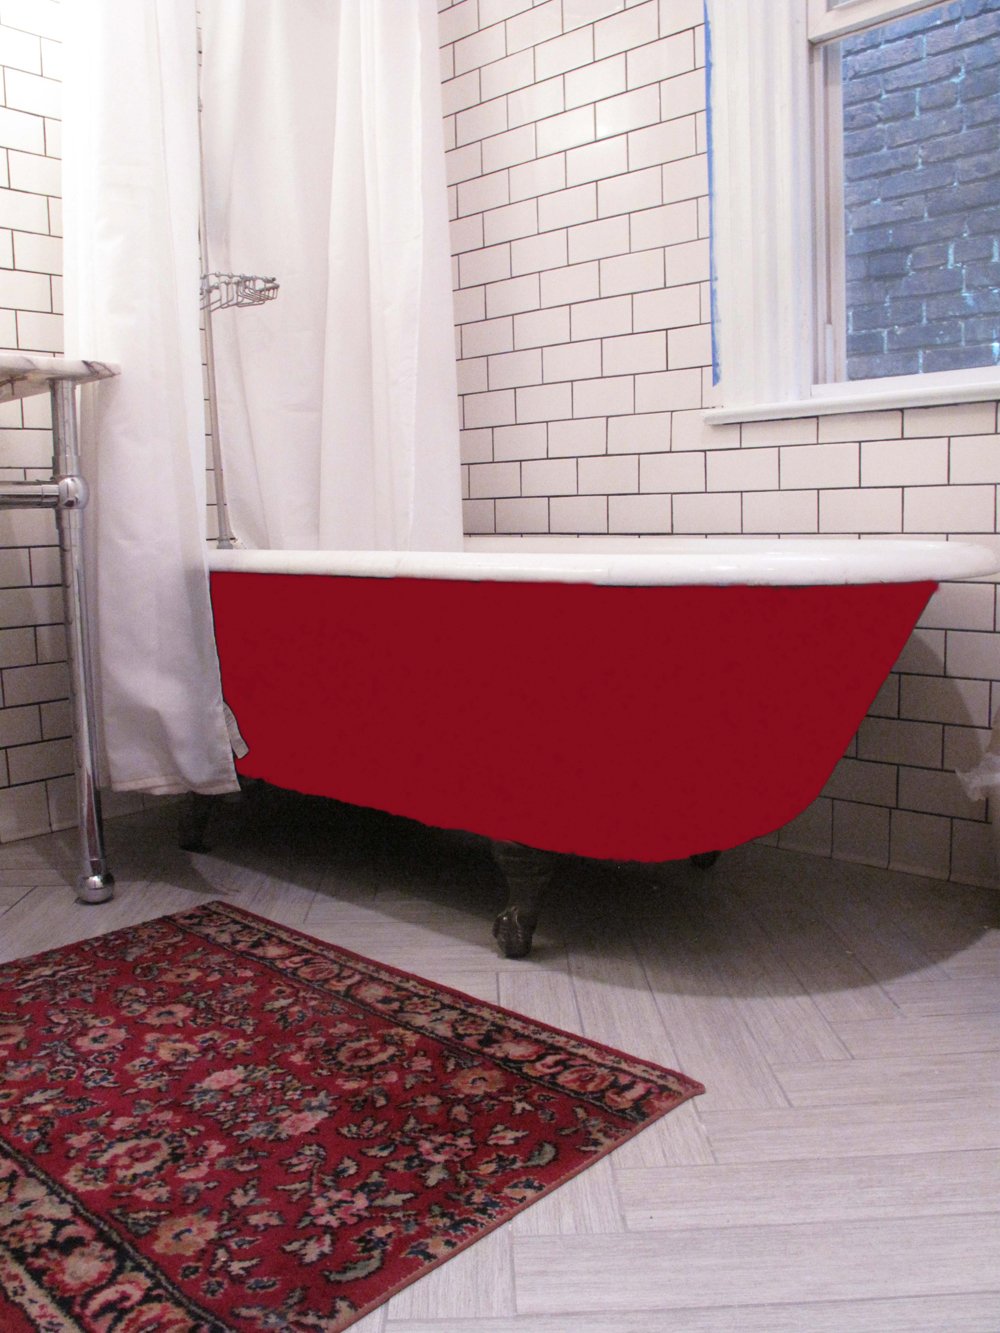 Red Bathtub The Hippest Pics